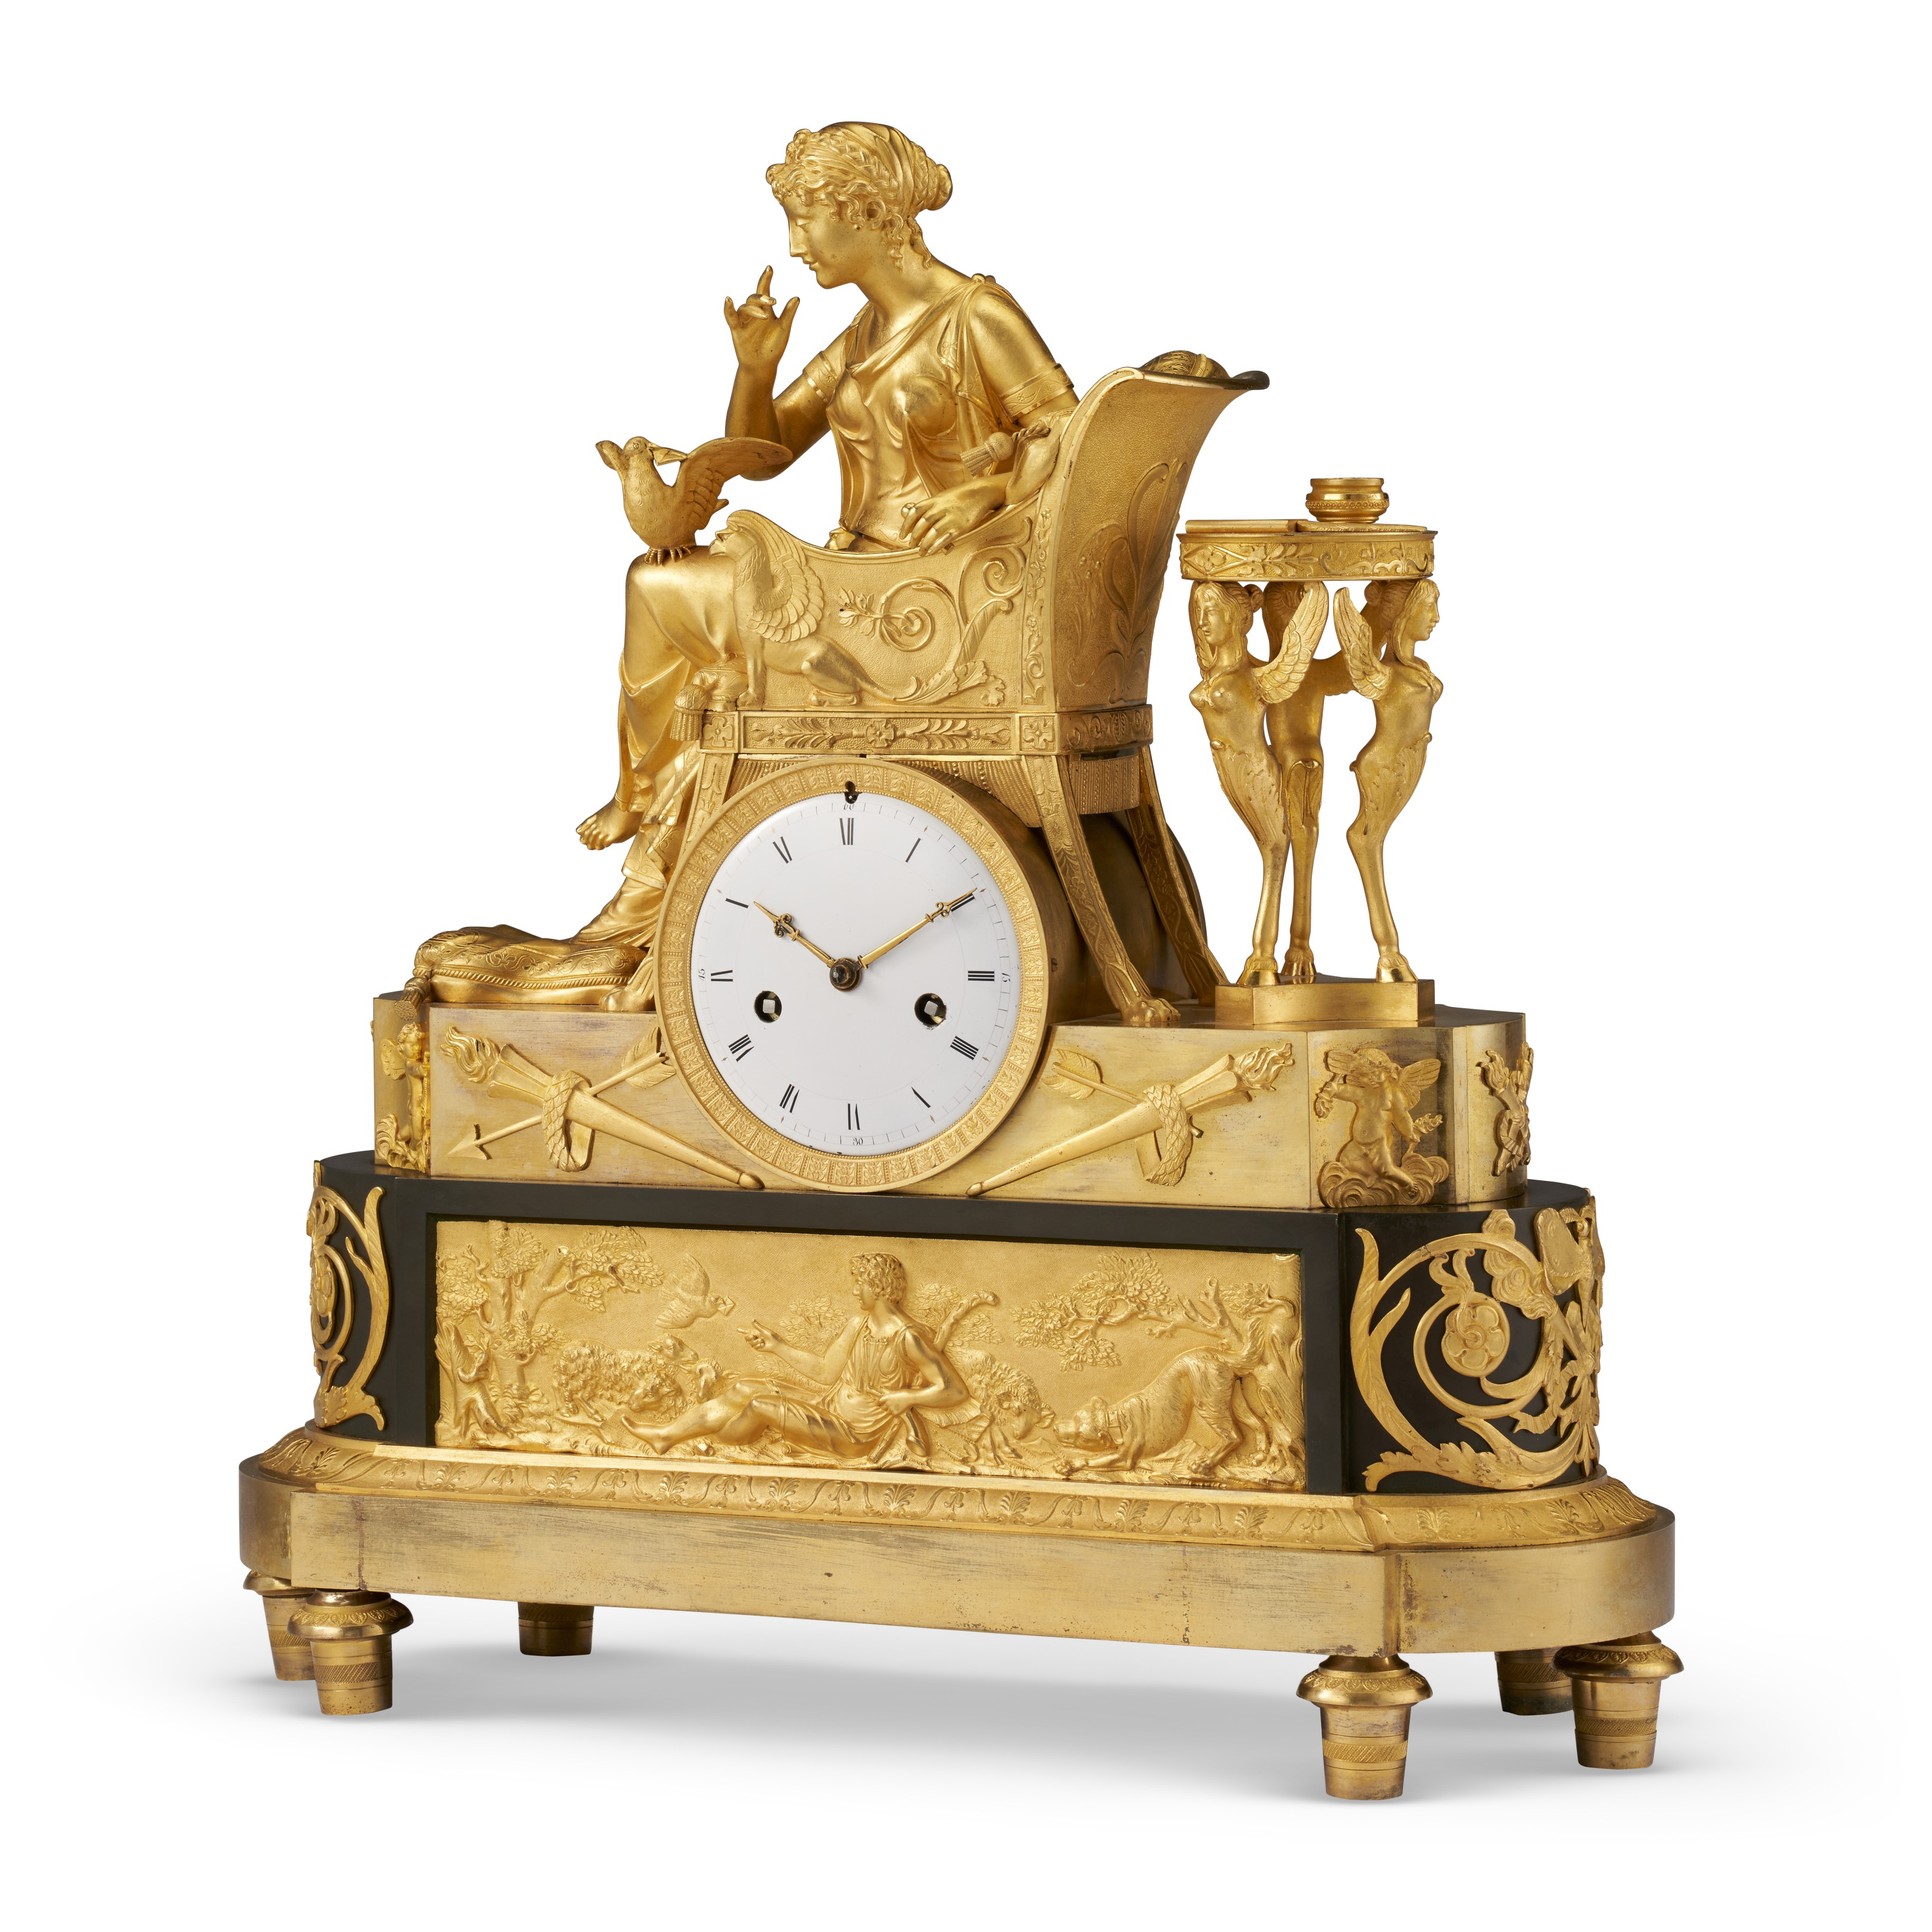 An Empire ormolu and patinated bronze clock, c. 1810. 19  in (48.3 cm) high, 17¾  in (45.1 cm) wide. Estimate $6,000-8,000. Offered in The Collector English & European Furniture, Ceramics, Silver & Works of Art on 5-19 October 2021 at Christie's Online